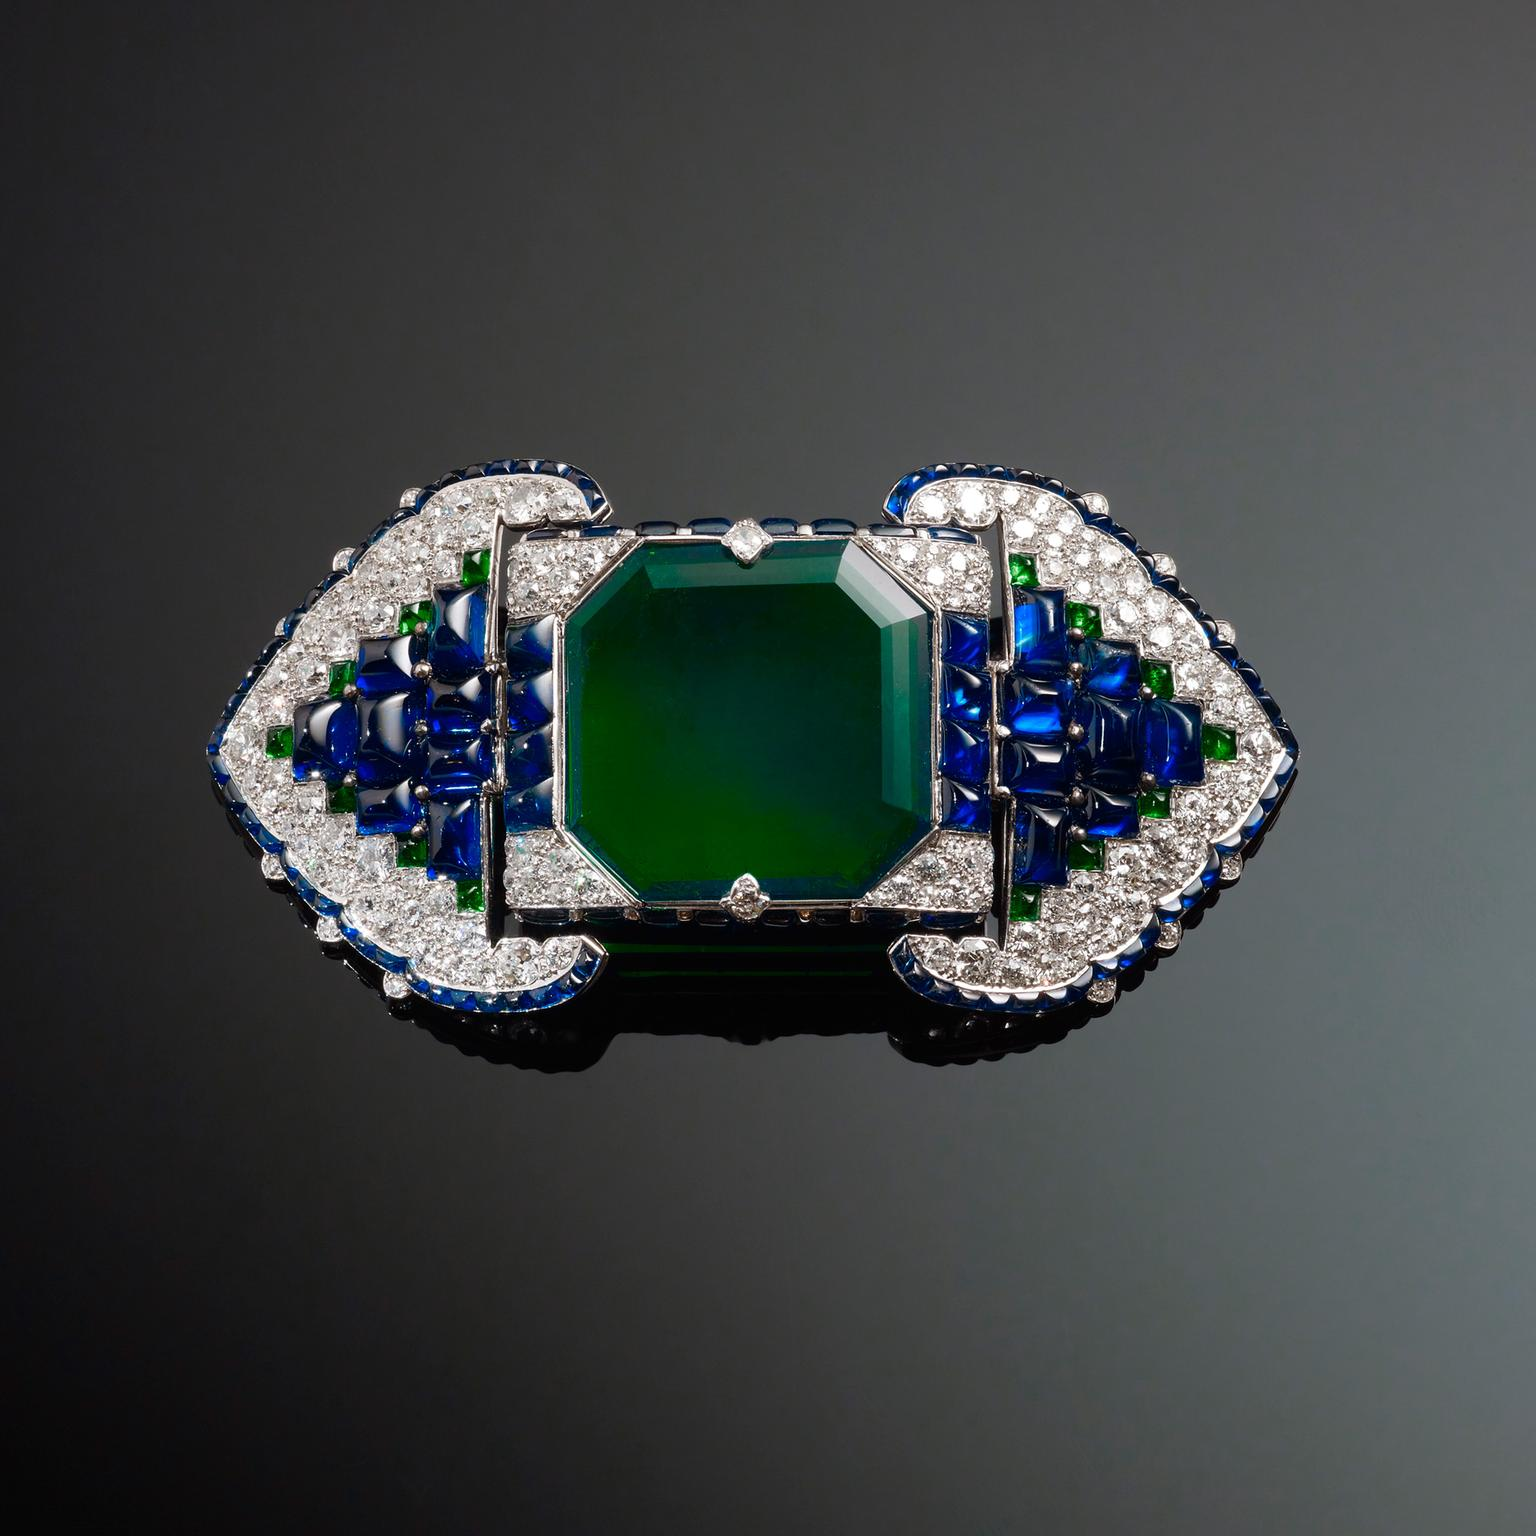 Cartier brooch with emeralds, sapphires and diamonds